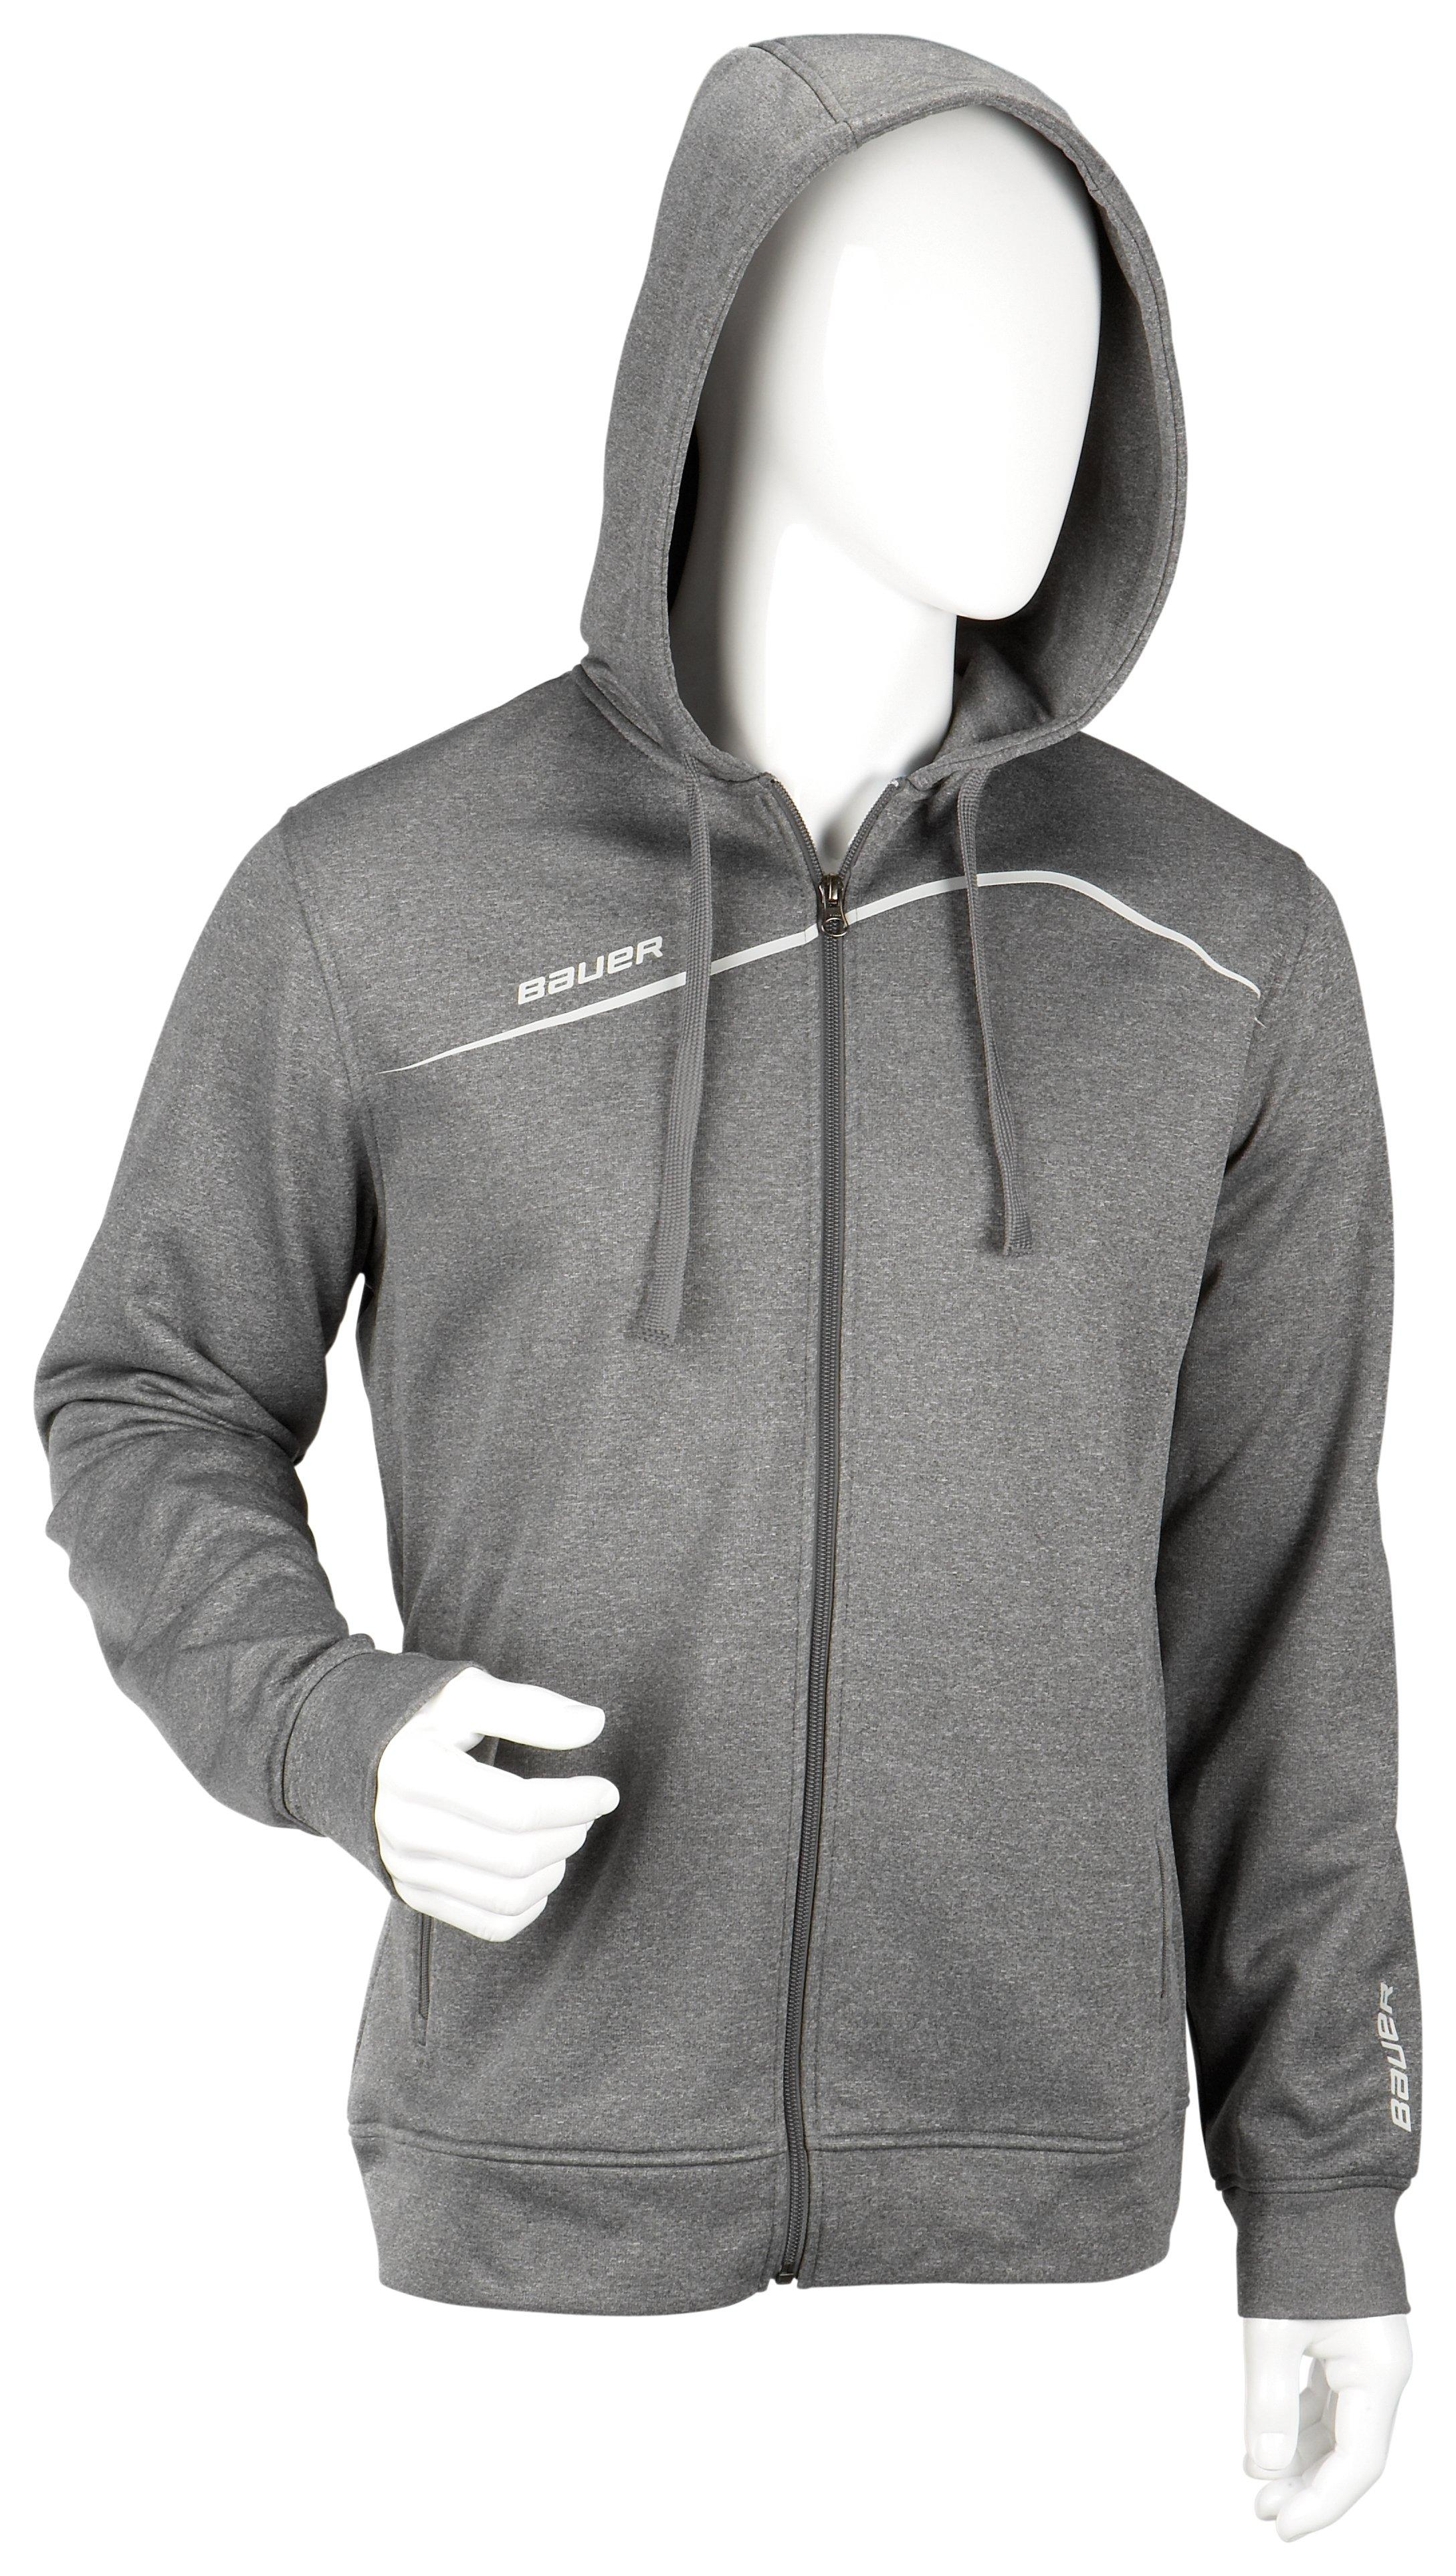 Team Full Zip Hoody - Premium,,medium